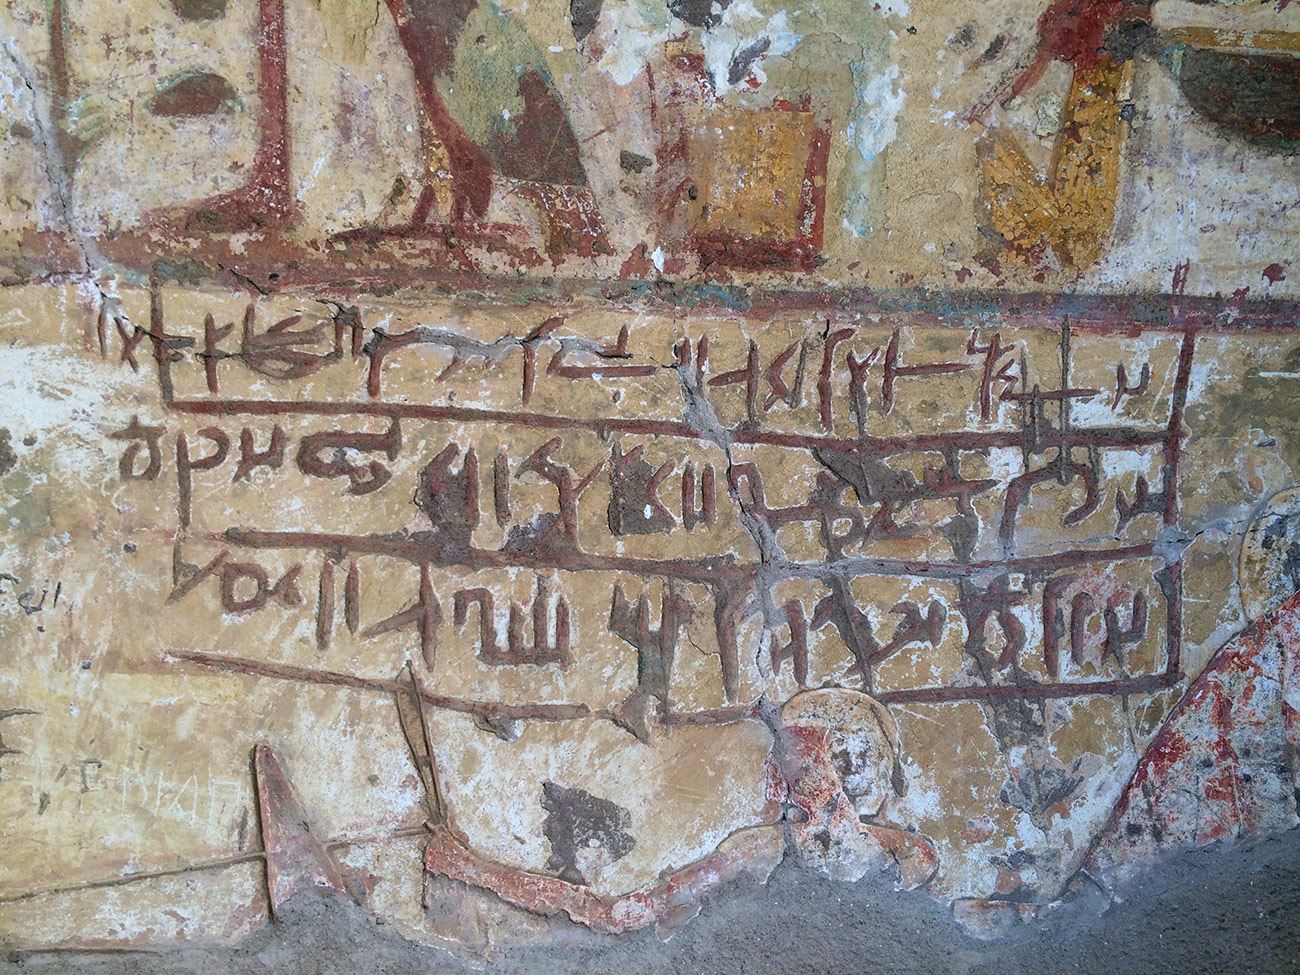 Close-up of three rows of inscribed Demotic letters on a yellow-tinted, painted Egyptian frieze inside a tomb